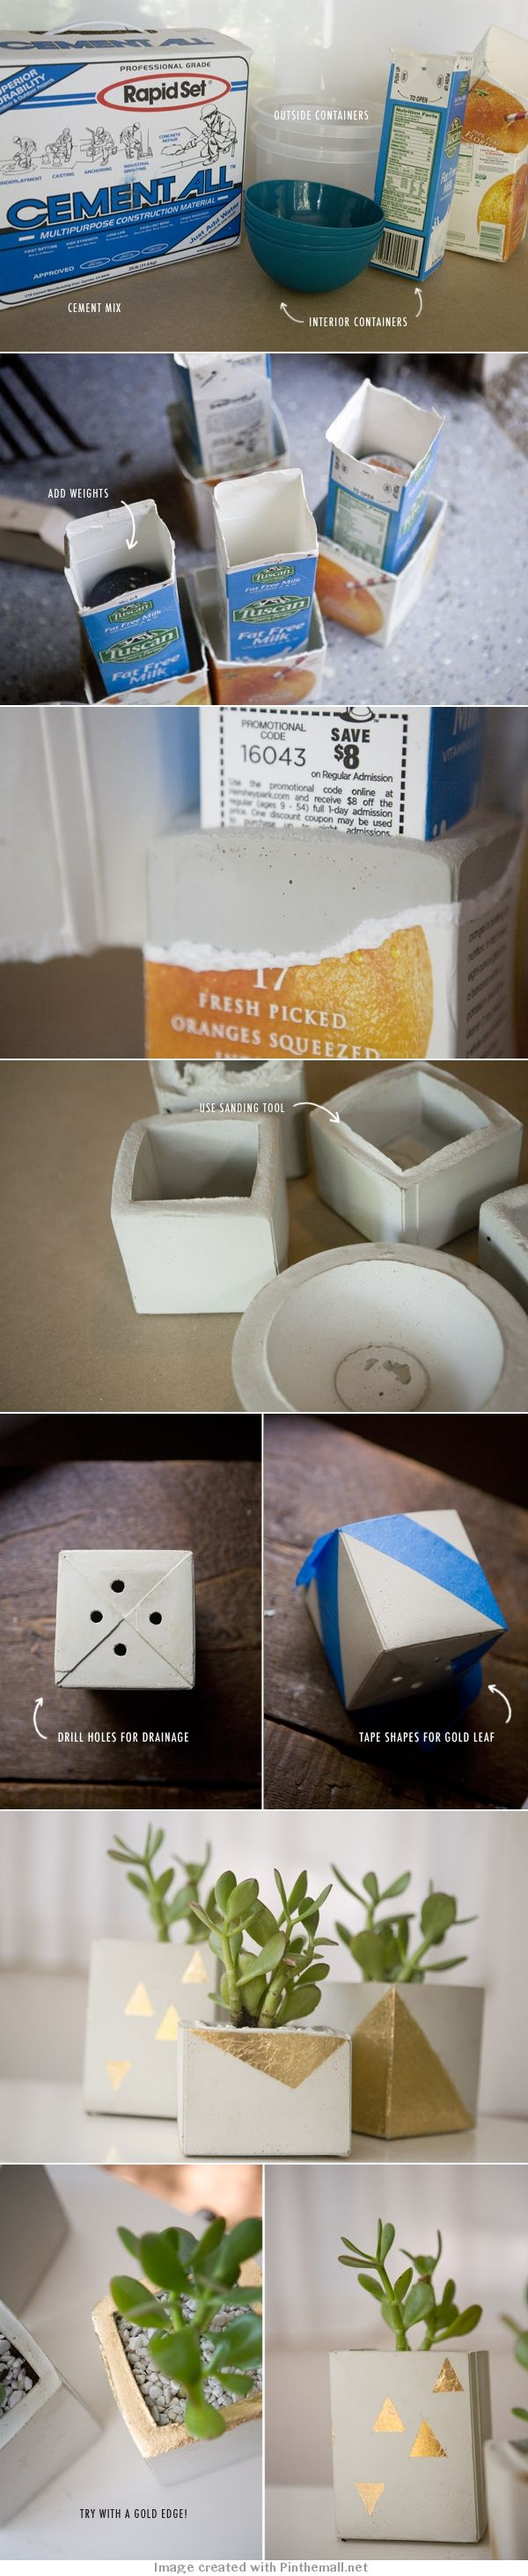 Event idea you can use common items that residents mjght have from items they have used. Like small paper ice cream containers. They can make their own decor with this event. Cement planters by Ruffled.